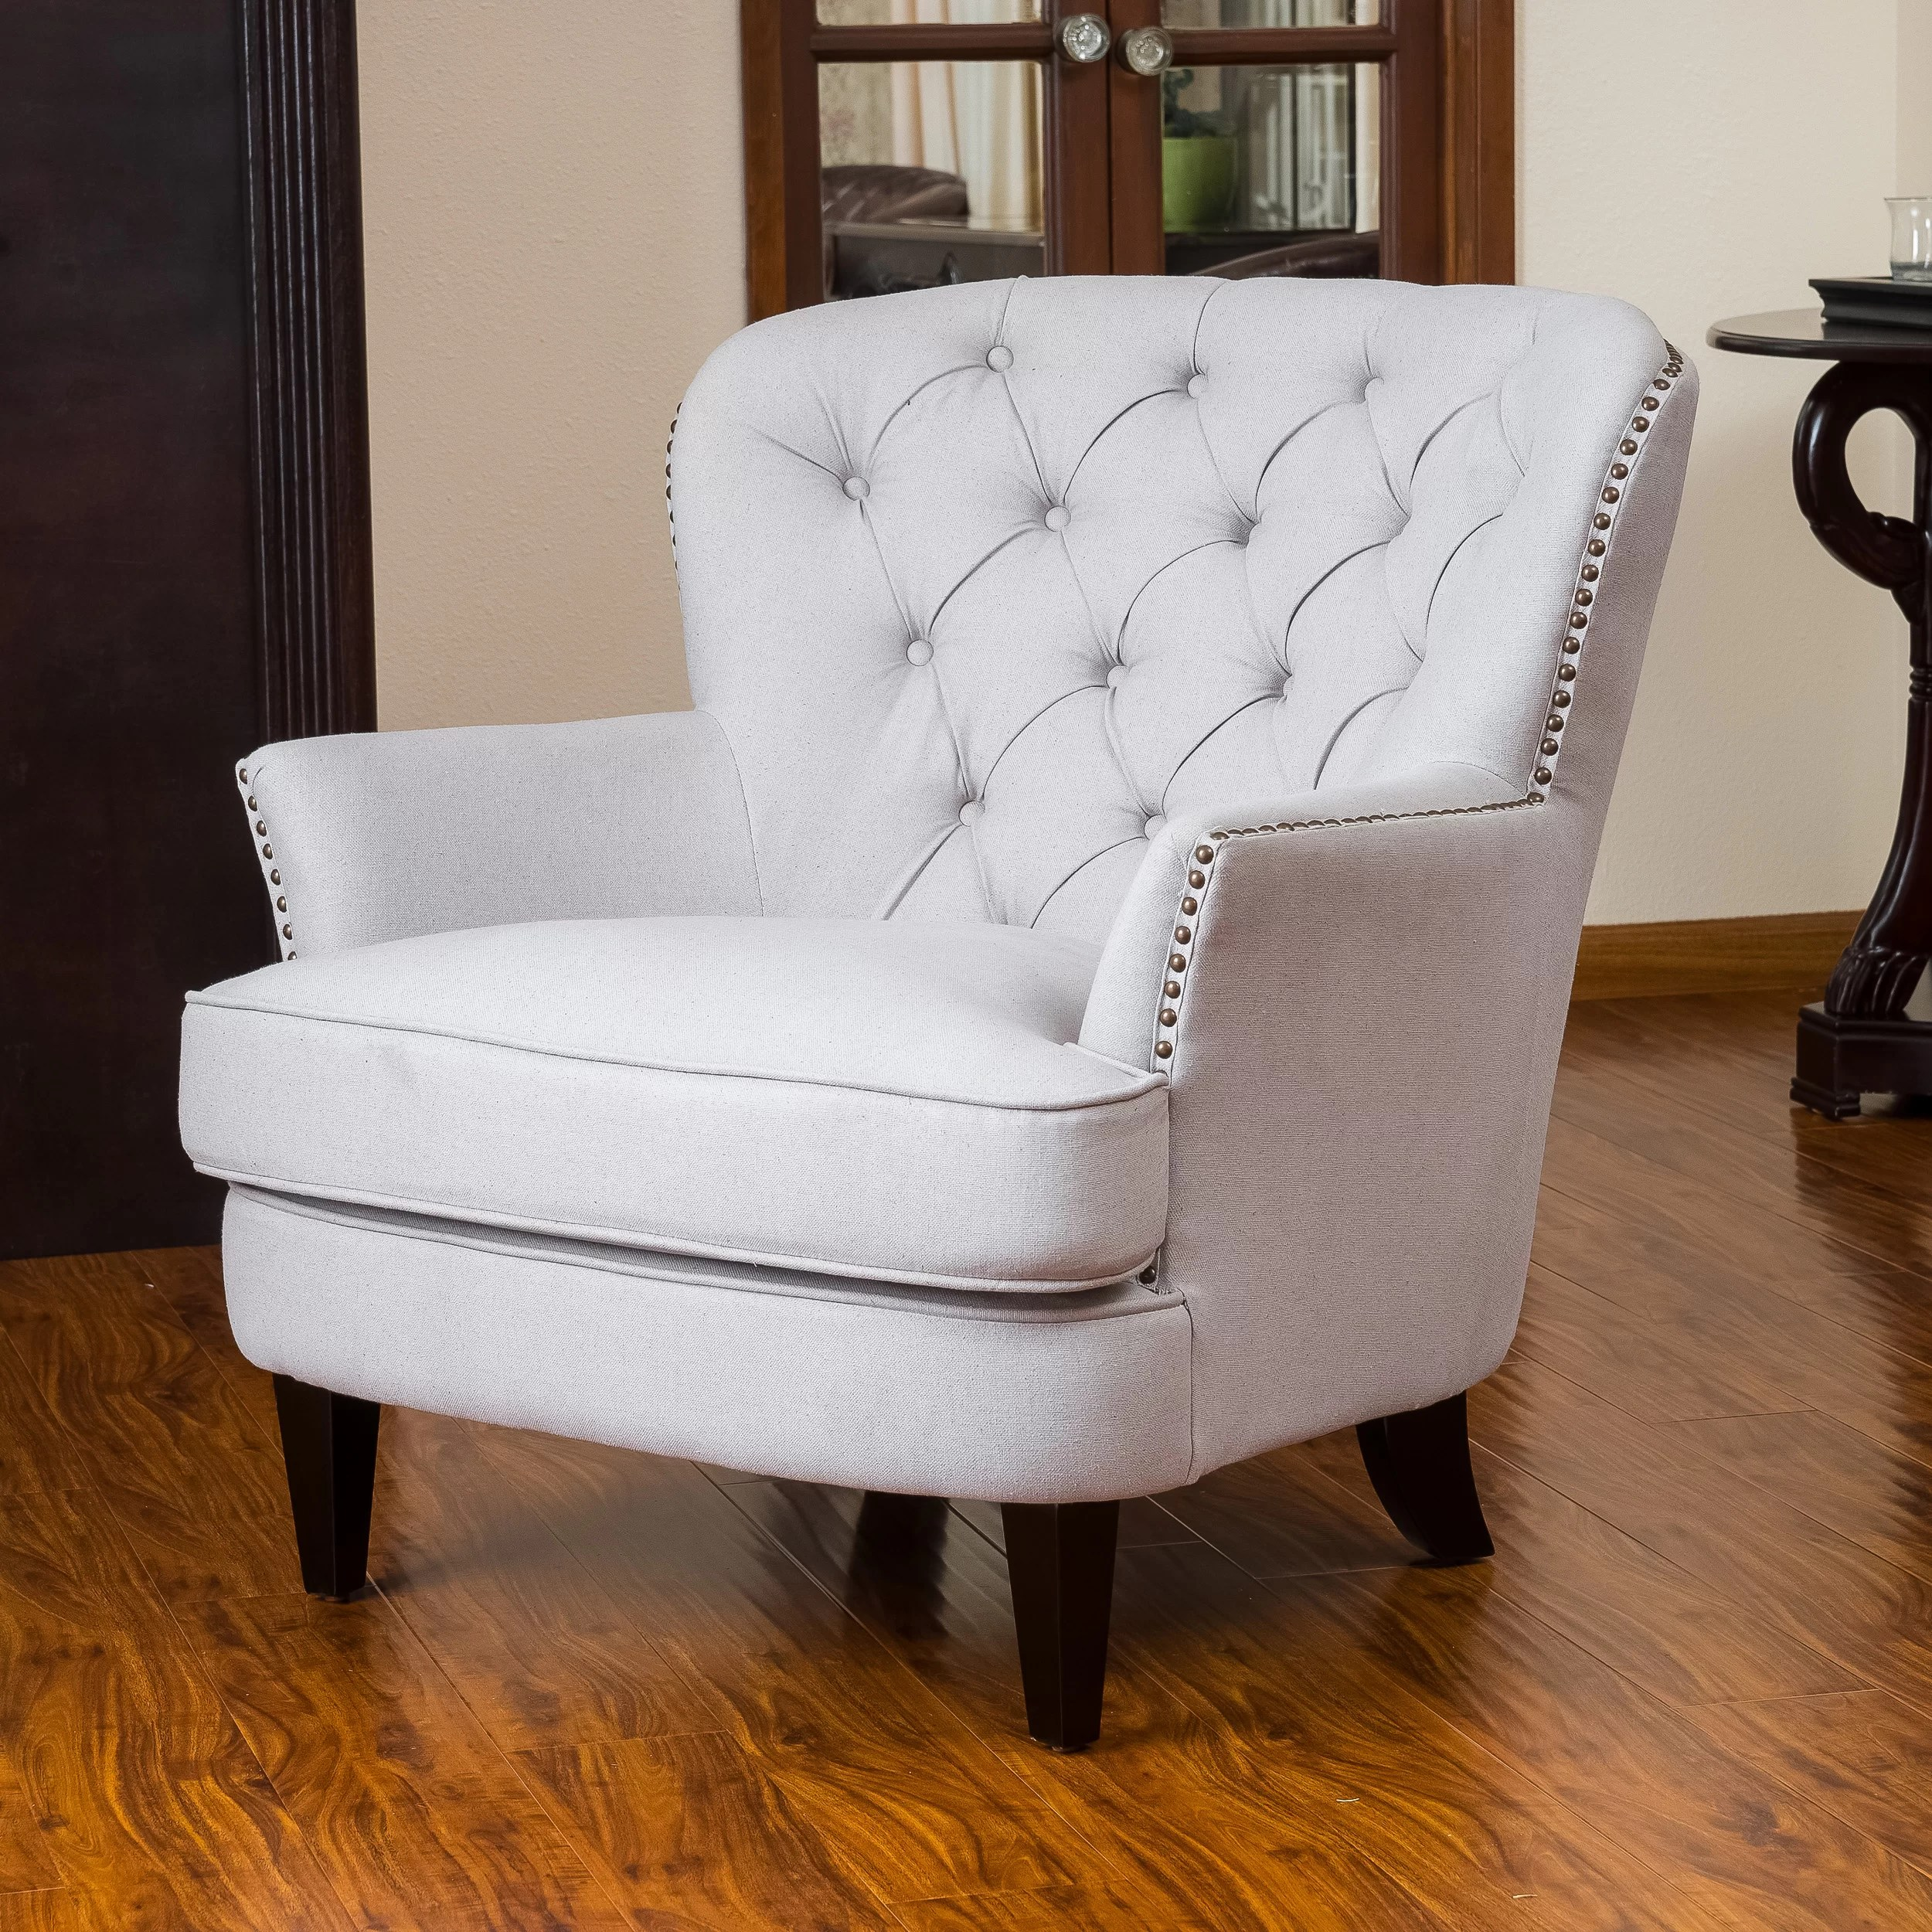 christopher knight club chair very cheap covers home loft concepts waldorf diamond tufted